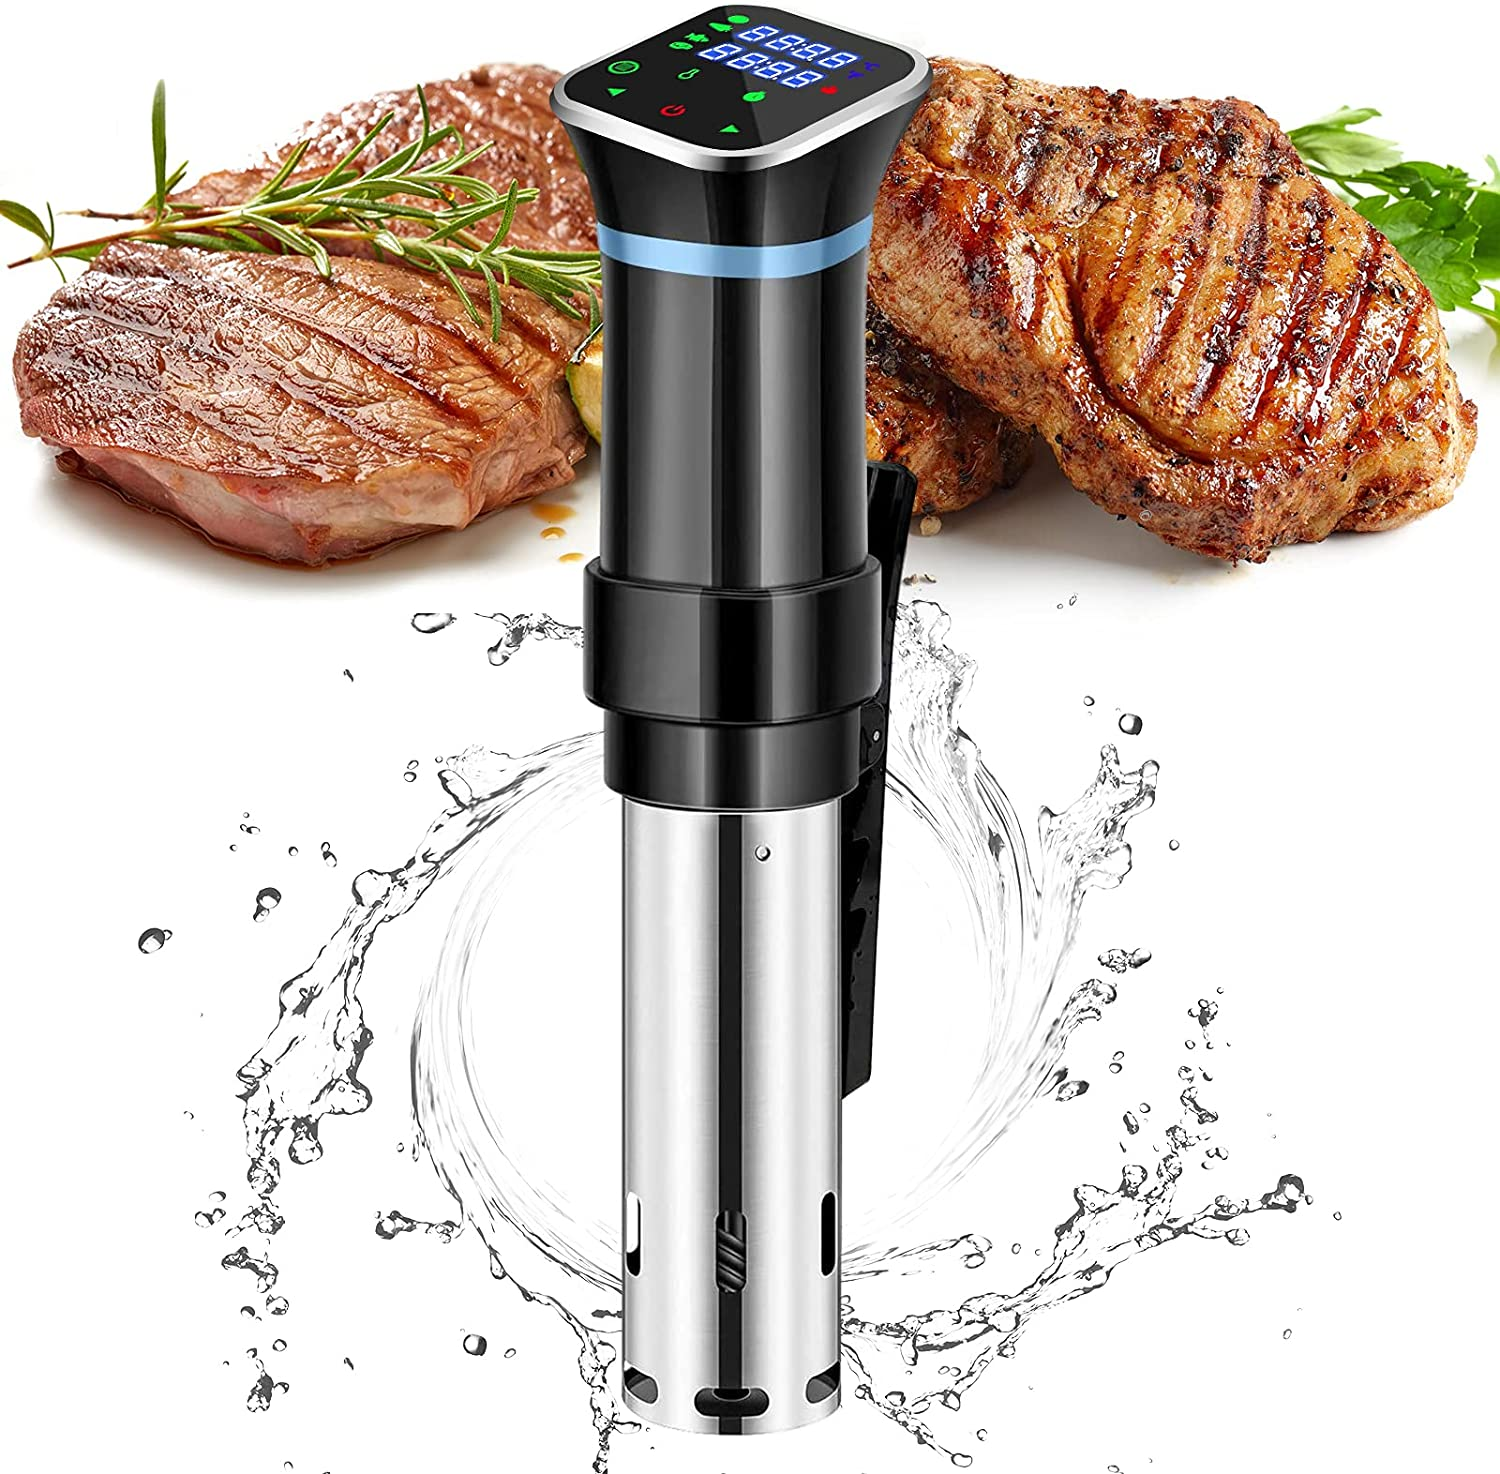 newoer Culinary Sous Vide and Precision Cooker, 1100W Immersion Circulator with SUS304 Stainless Steel Components,Digital Interface, Temperature and Timer for Kitchen